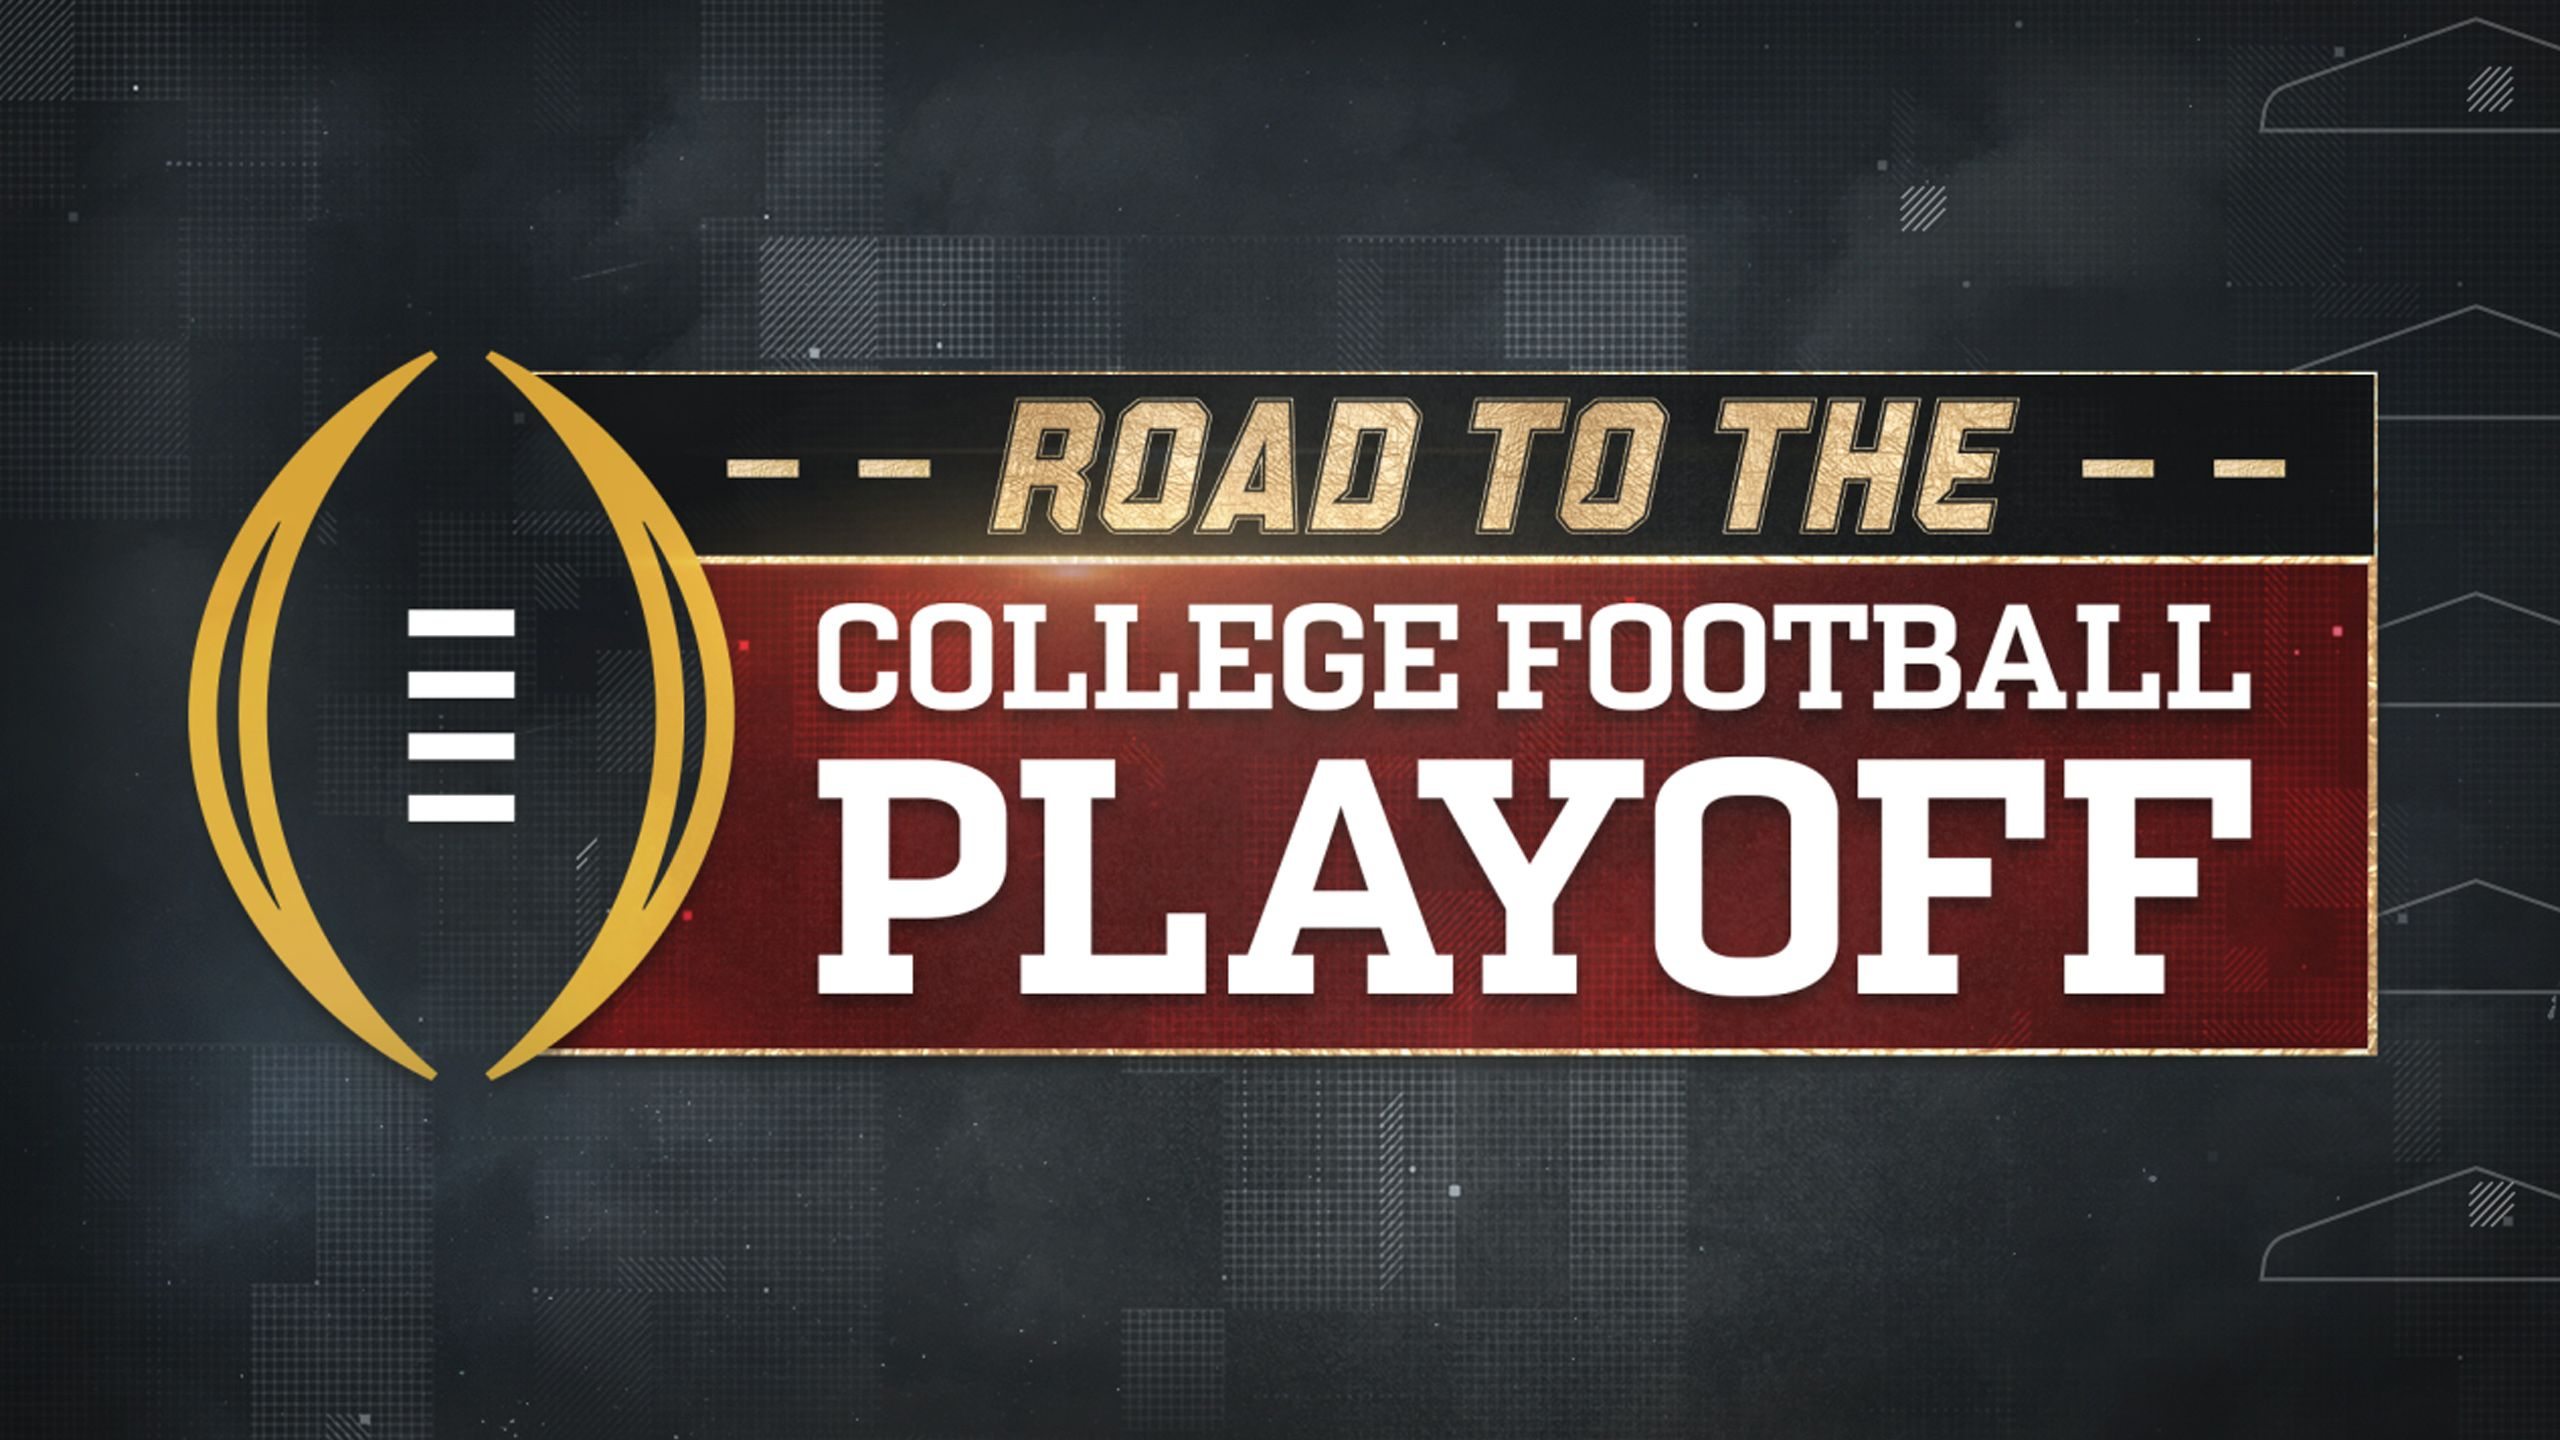 Road to the College Football Playoff Presented by Allstate